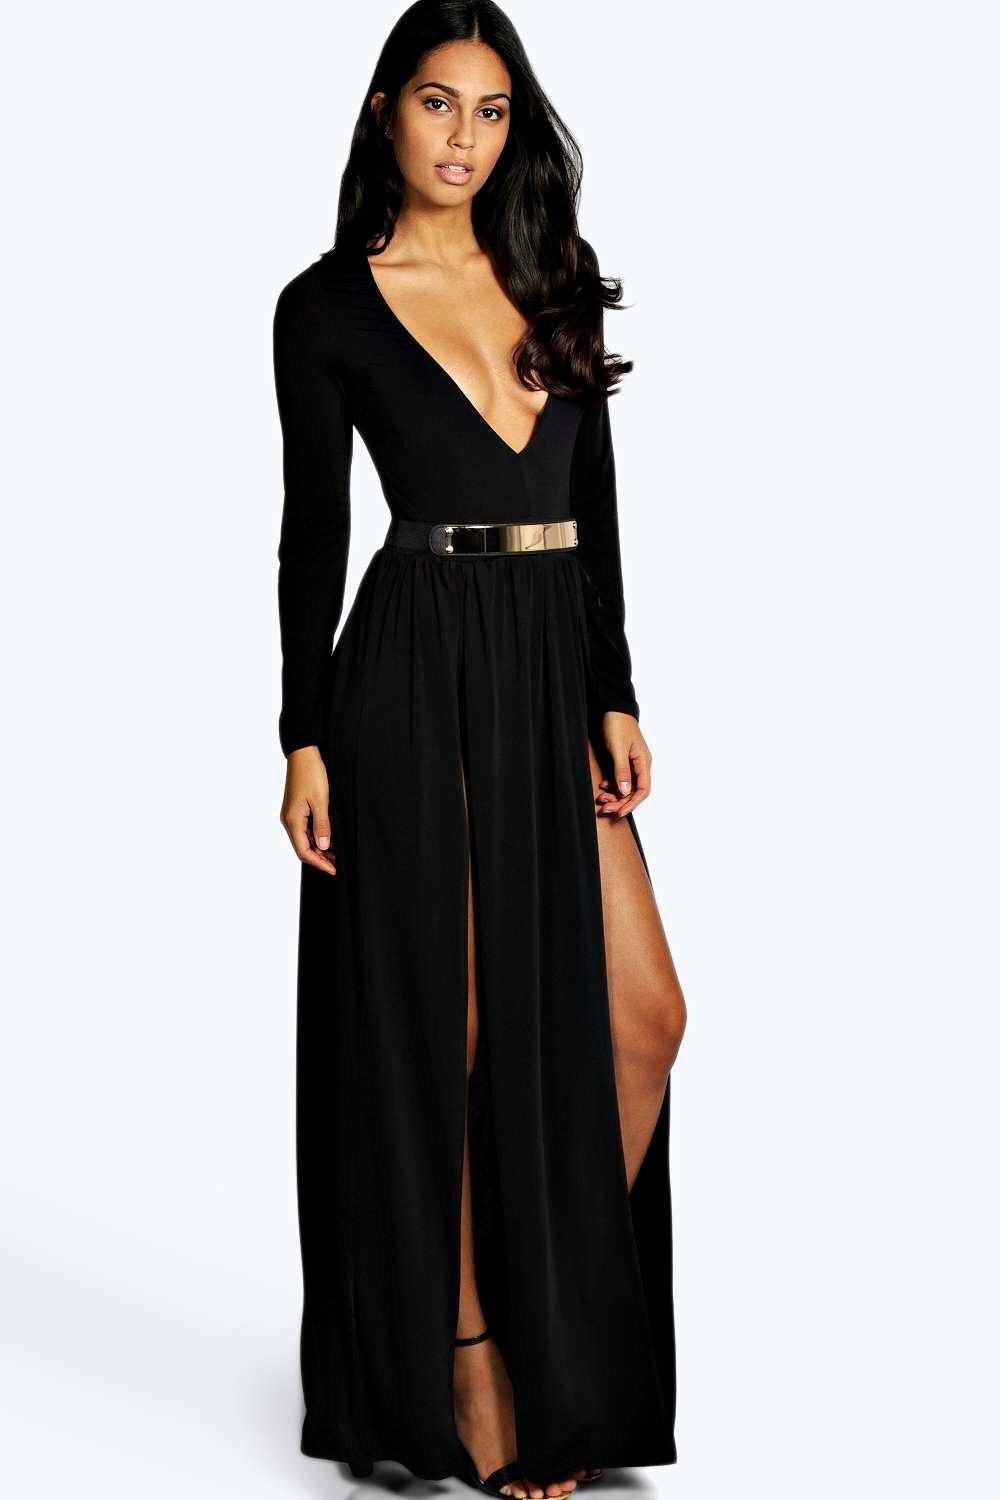 Black dress gold belt - Maxi Dress With Belt Re Re